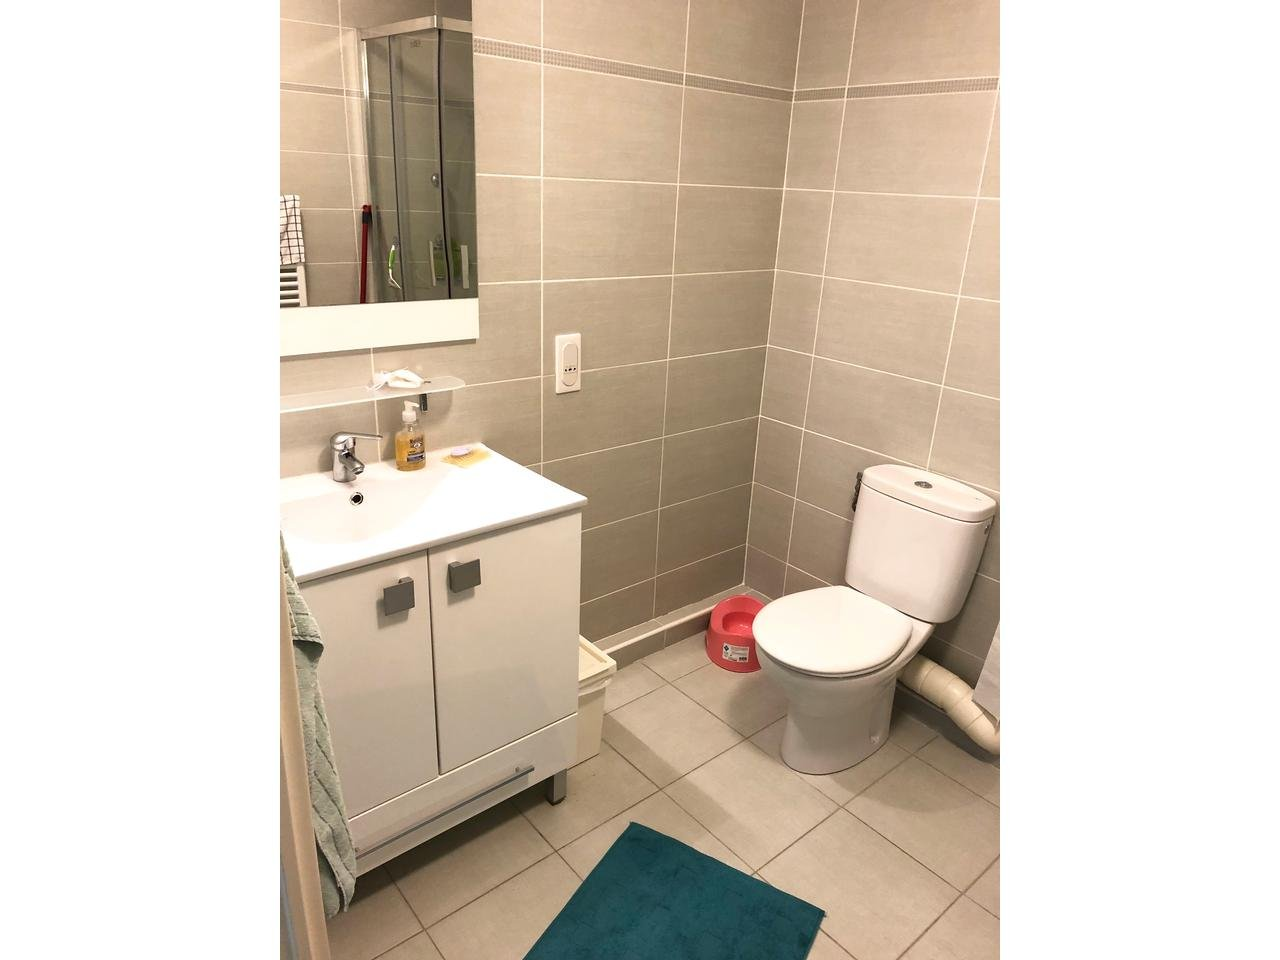 Appartement  2 Rooms 48.1m2  for sale   295000 €